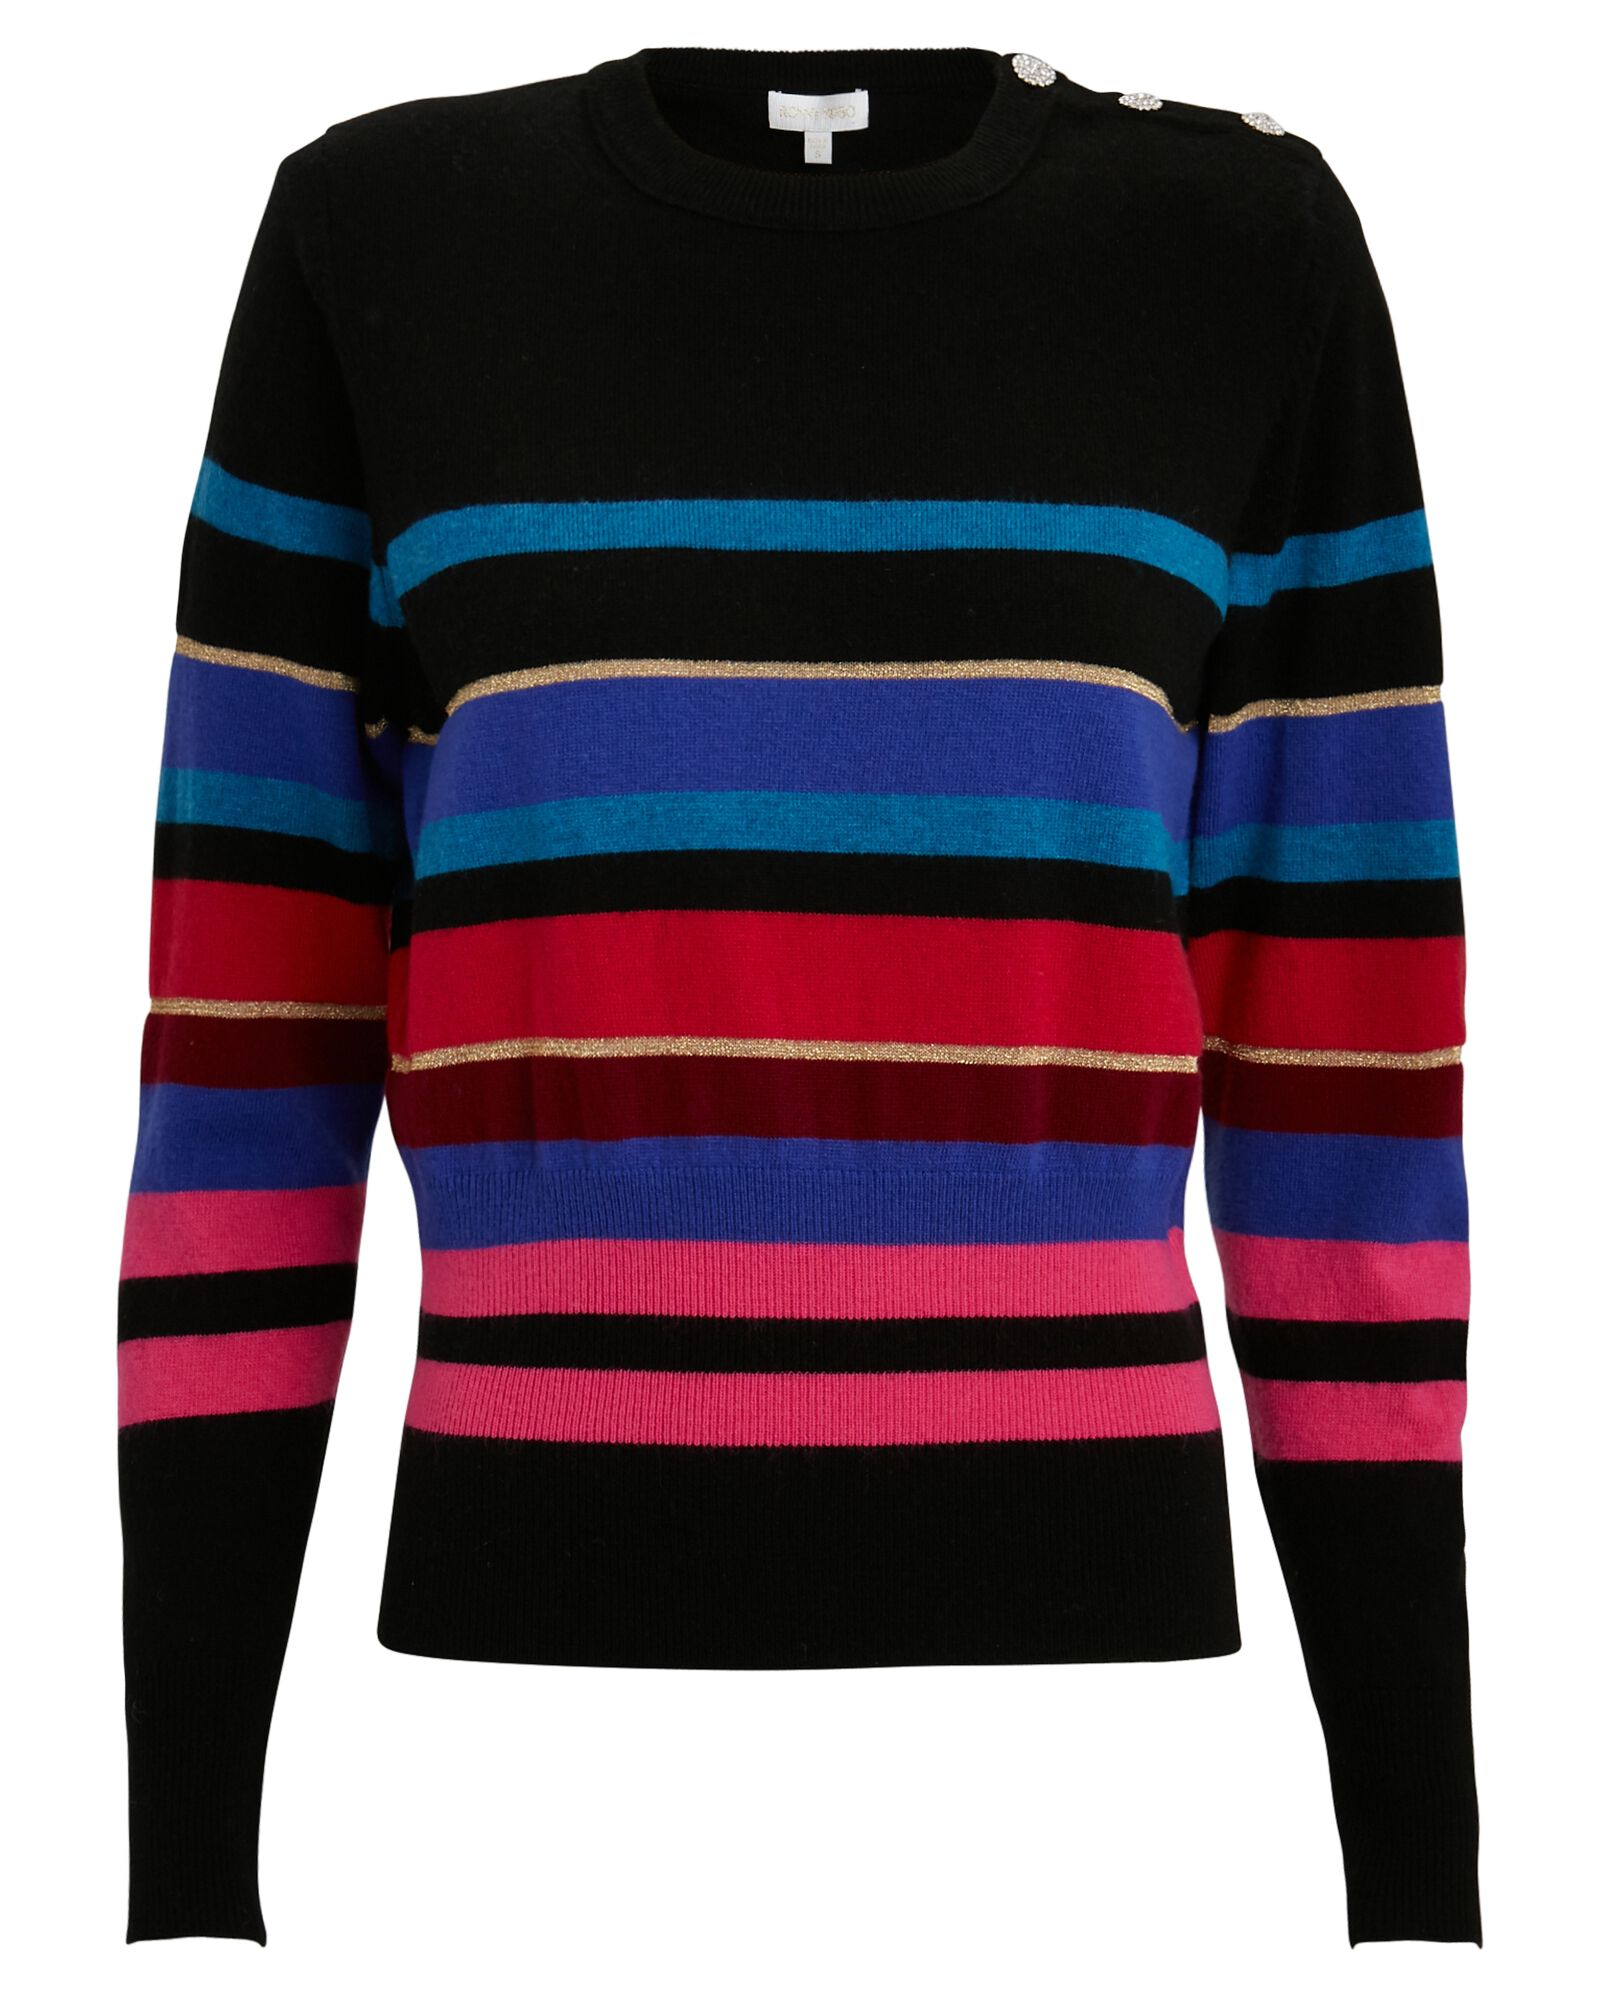 Inge Striped Wool-Cashmere Sweater, BLACK, hi-res